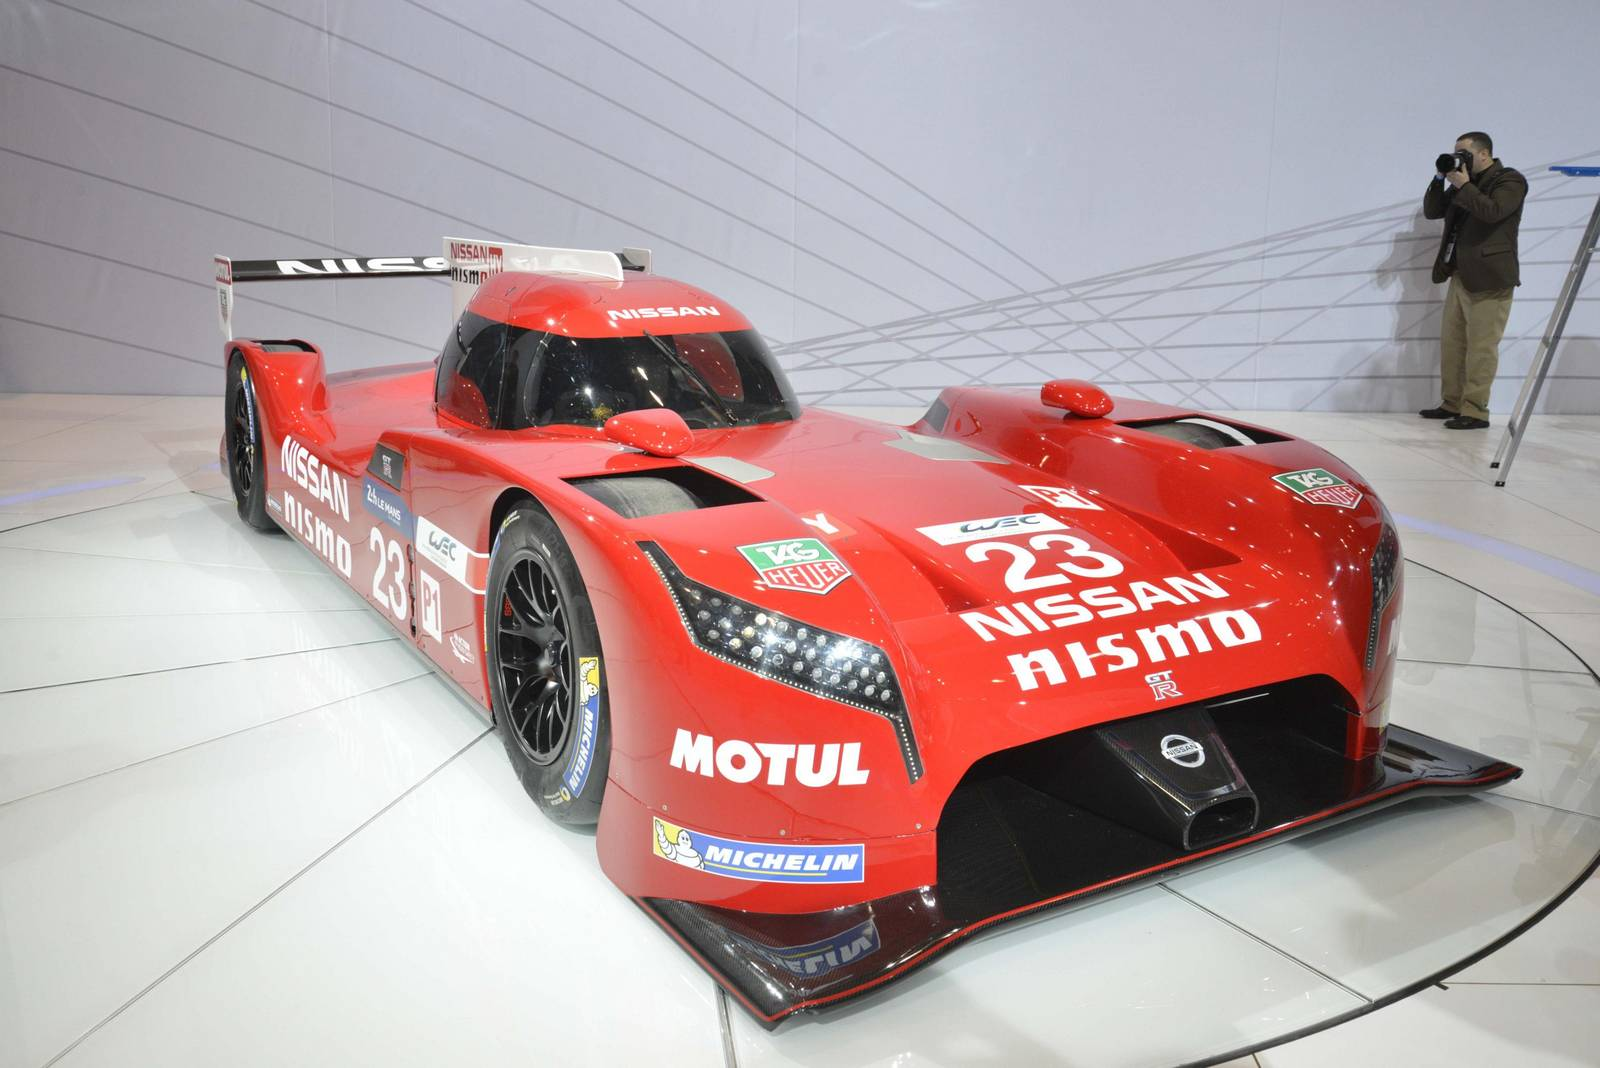 Developing the Nissan GT-R LM NISMO